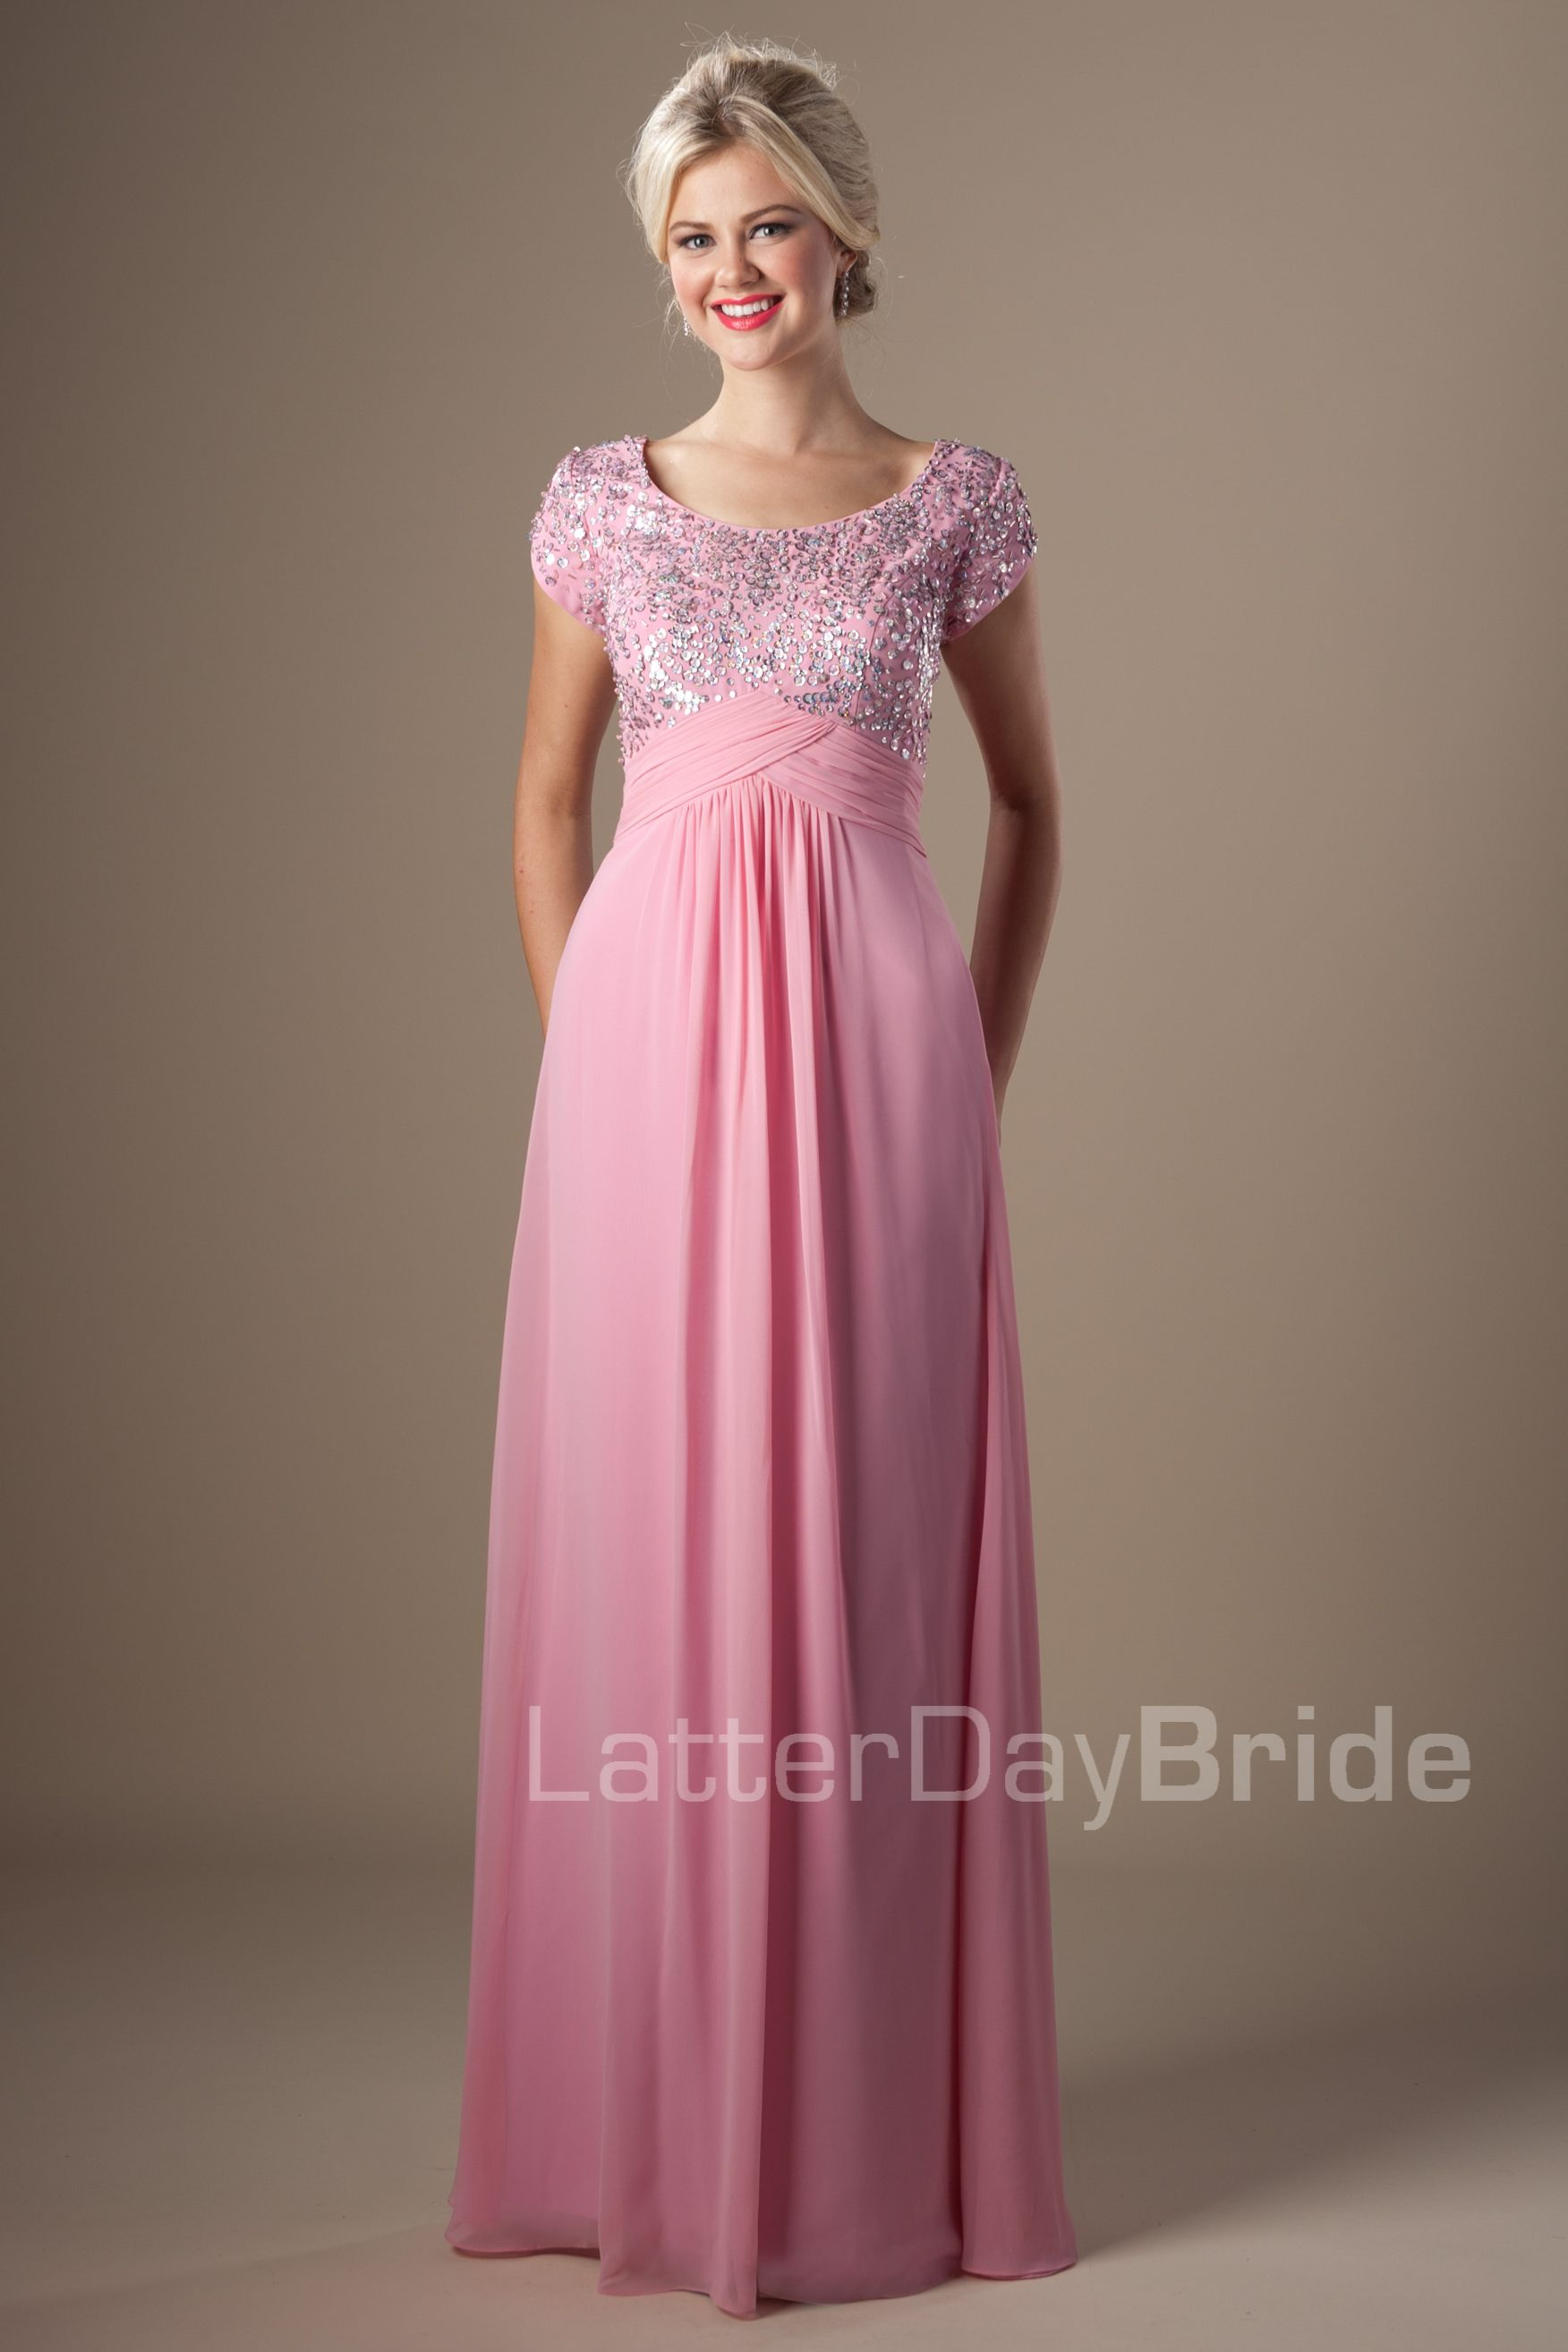 Modest Prom Dresses : Bethany | Plus Size Elegance Gowns | Pinterest ...